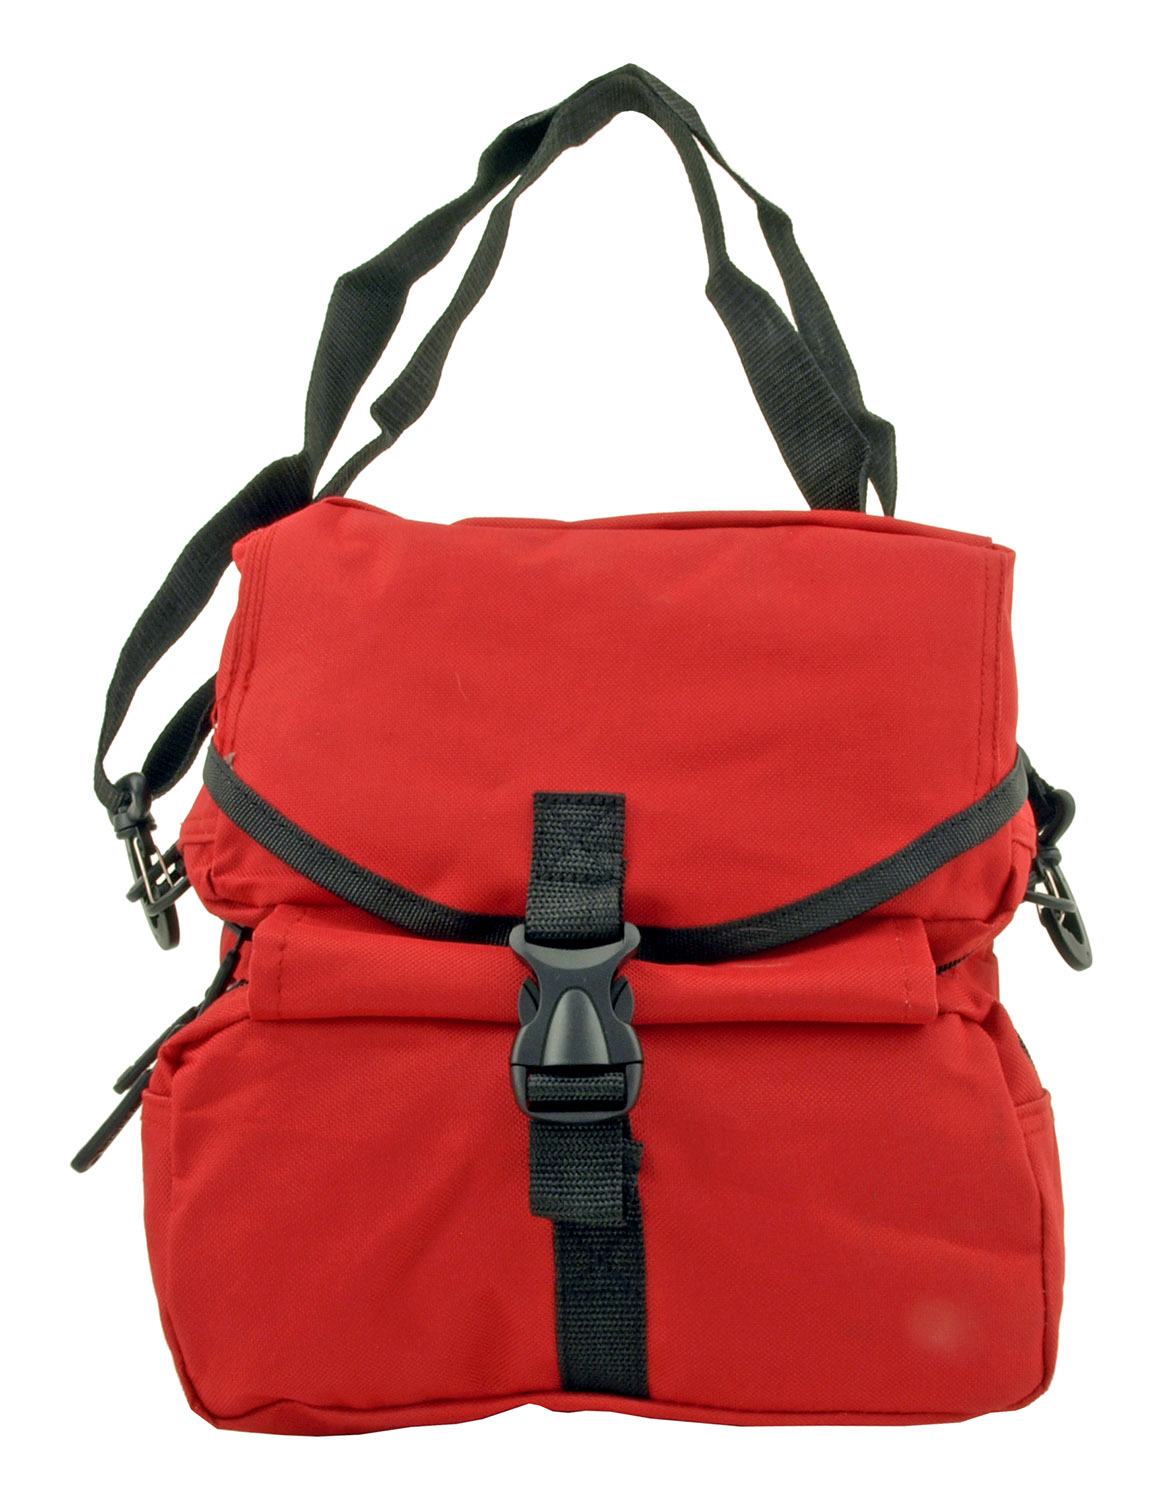 Tactical Folding Medical Egress Molle Attachment Rescue Bag - Red